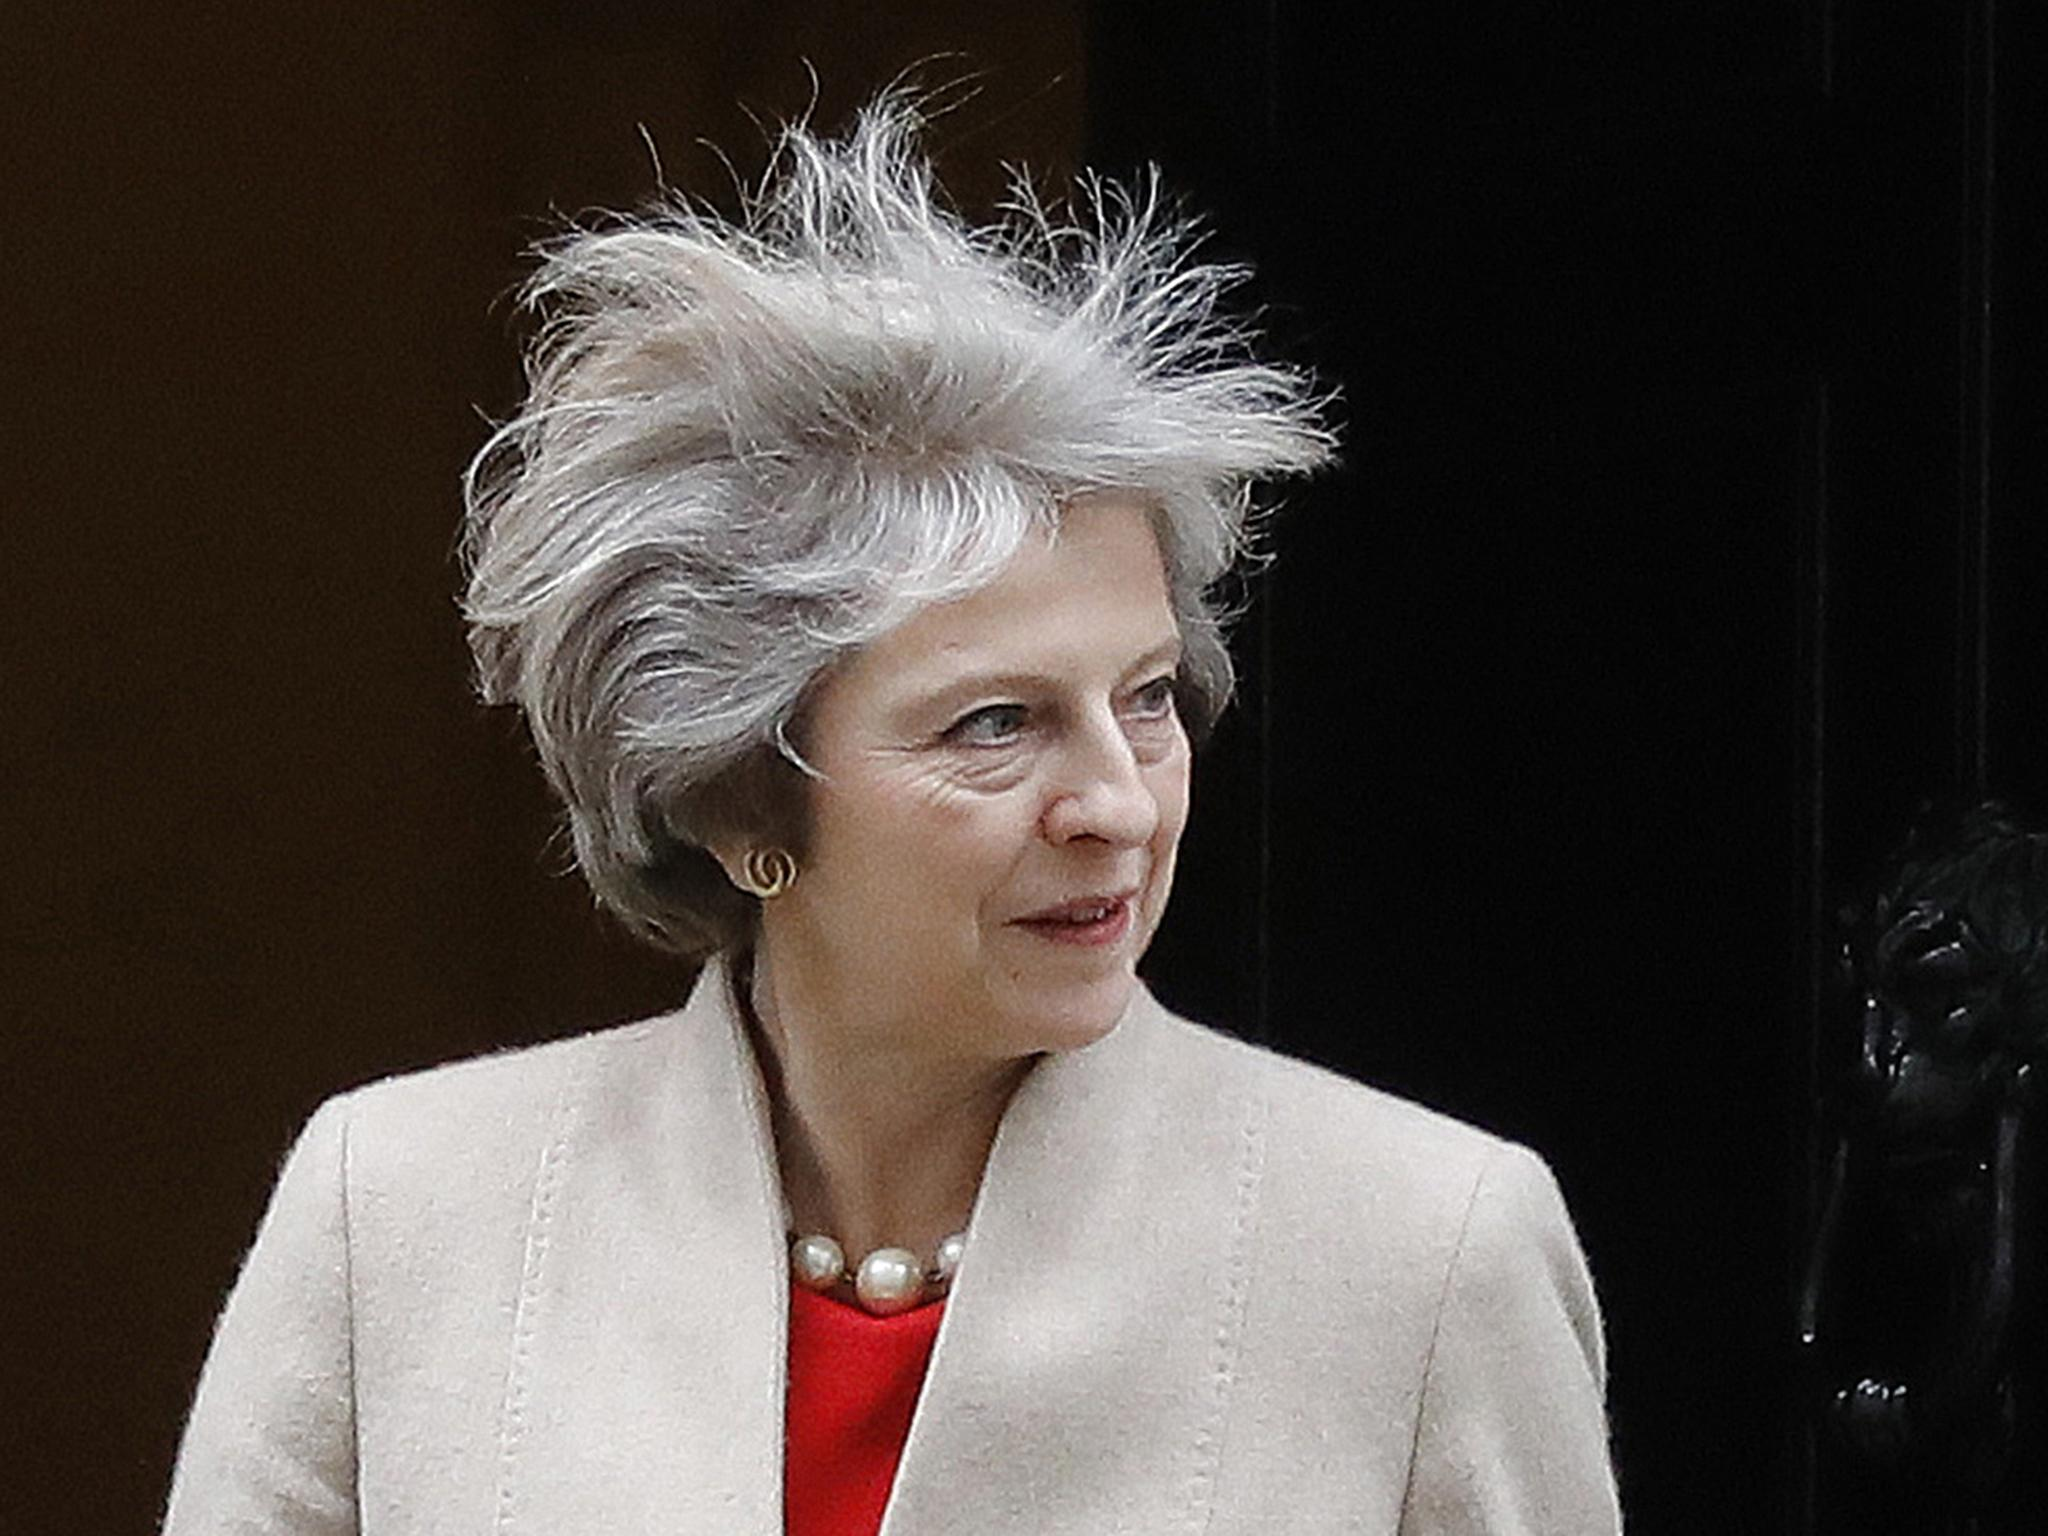 Brexit: Theresa May's Article 50 plans could be delayed by months due to Stormont crisis legal challenge